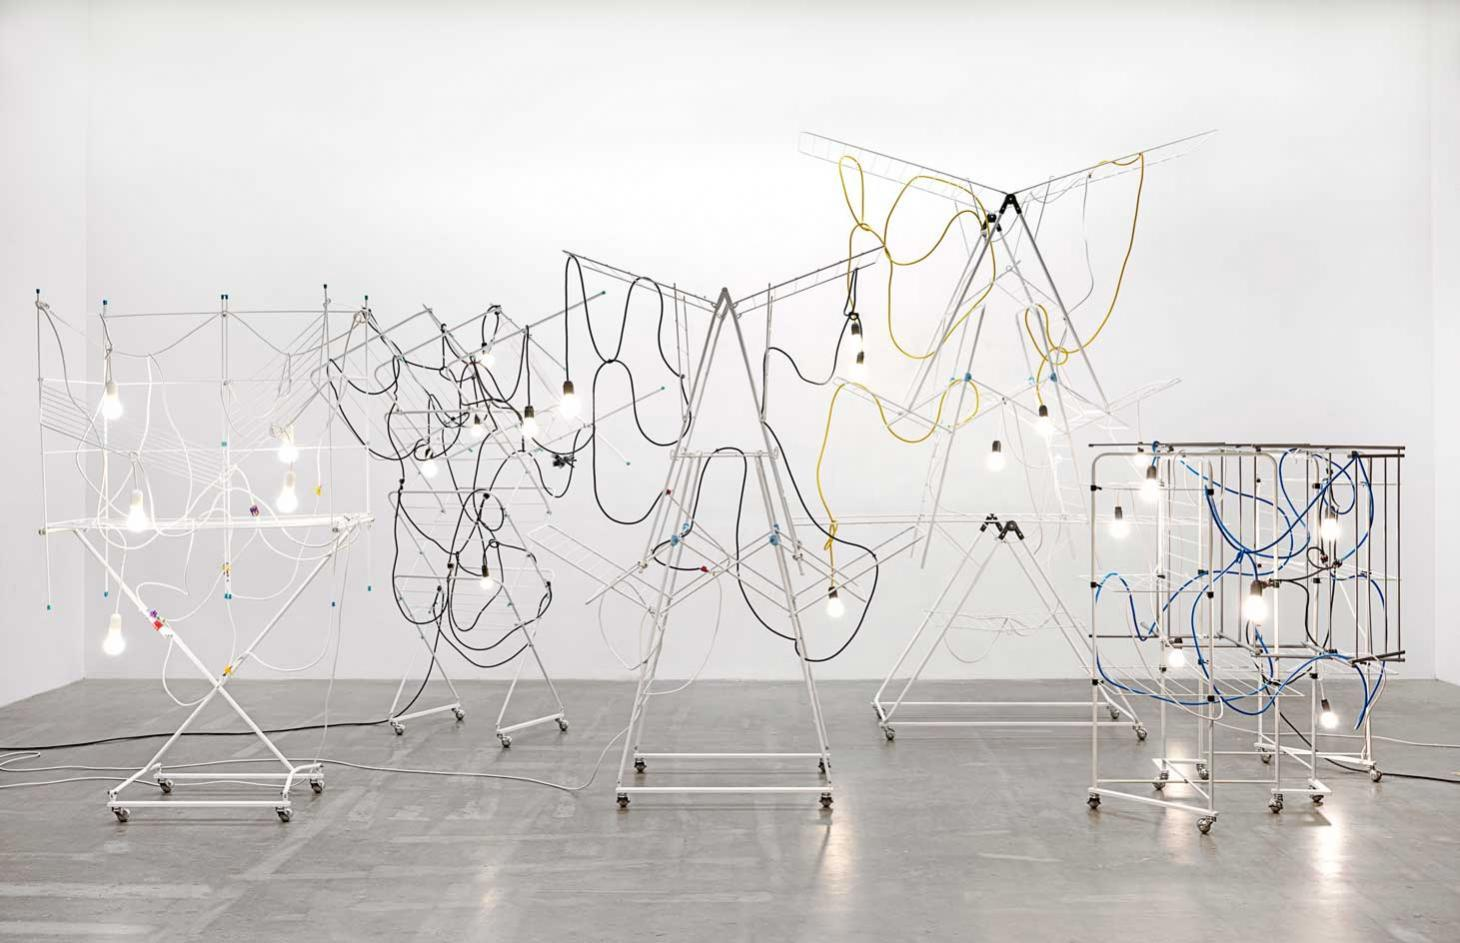 Haegue Yang,Non-Indépliables, nues 2010/2020, in 'Strange Attractors', at Tate St.Ives, as the artist discusses the influence of Sophie Taeuber-Arp on her work